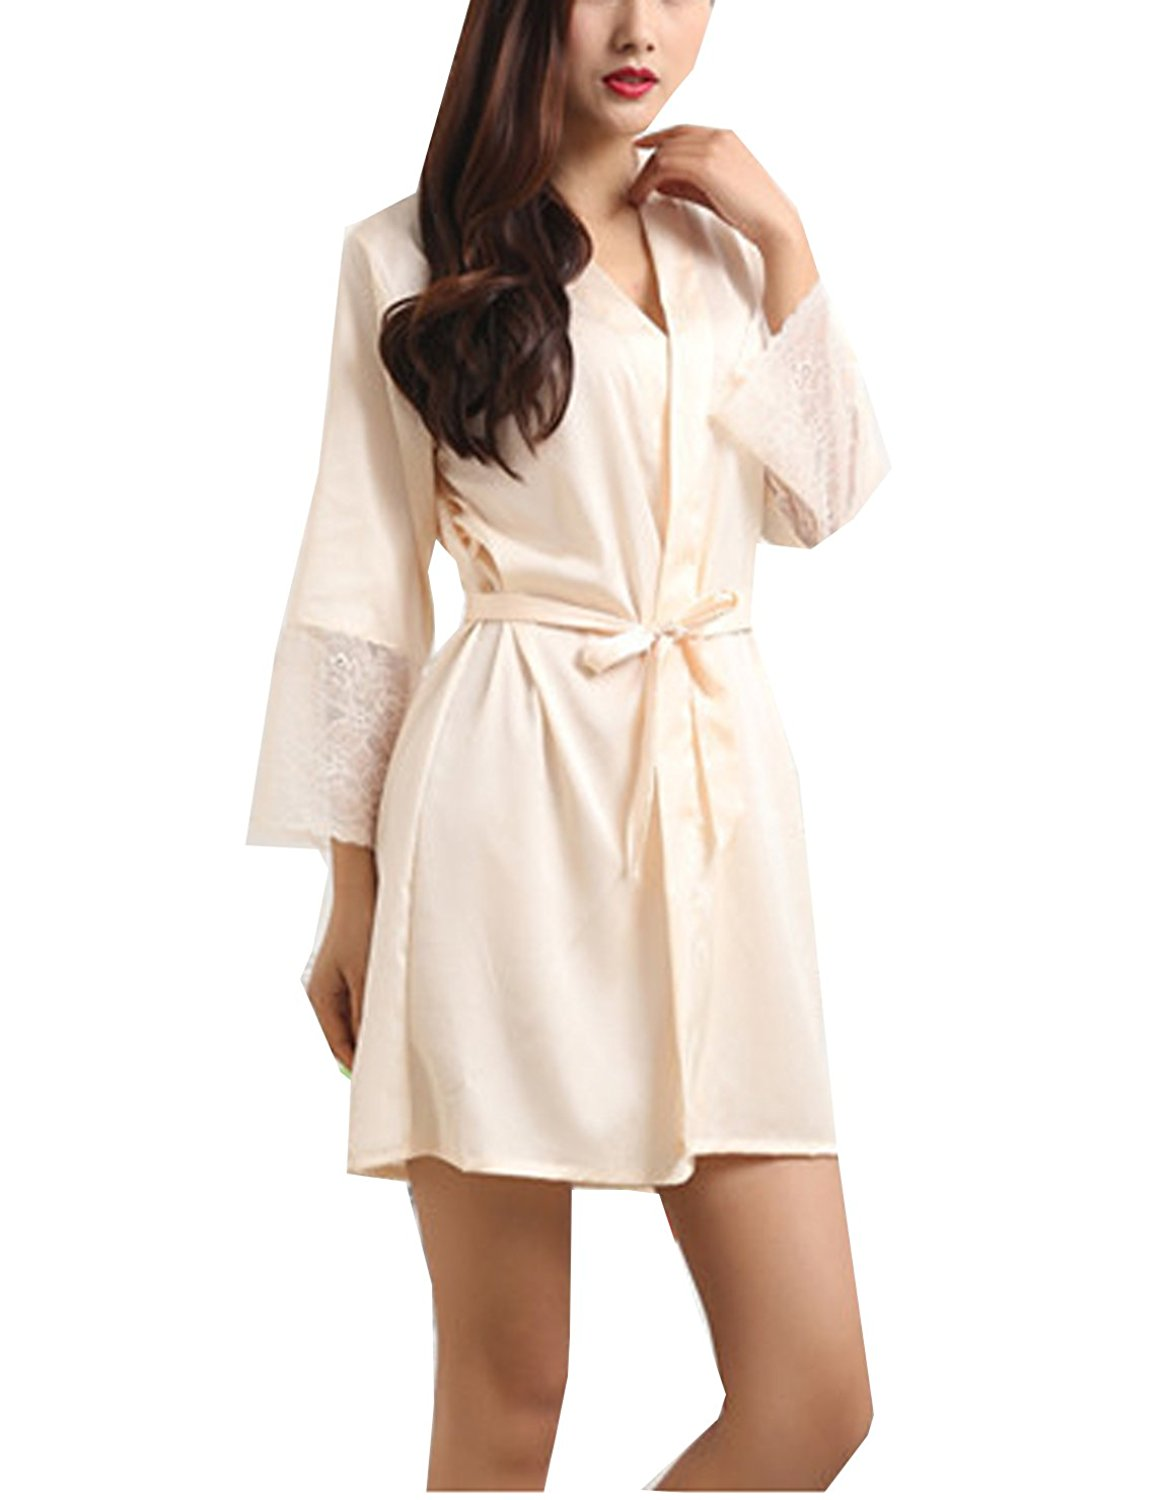 806564f23e3 Get Quotations · CoCoUSM Womens Lace Satin Short Kimono Robe Sleepwear(US  XS-L)